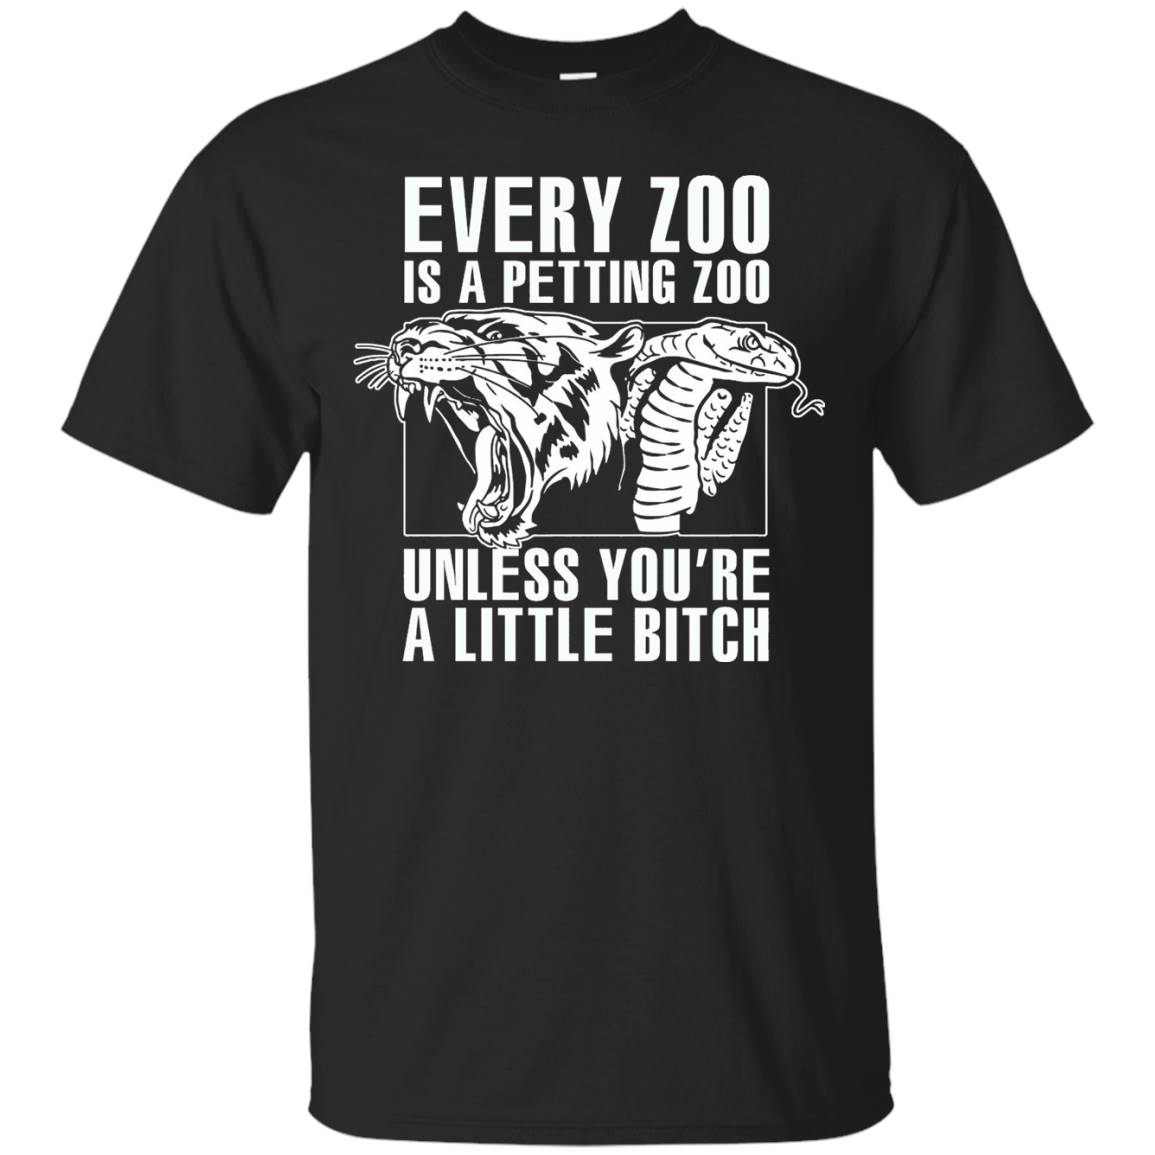 Every Zoo is a Petting Zoo Shirt Unless you're a bitch – T-Shirt